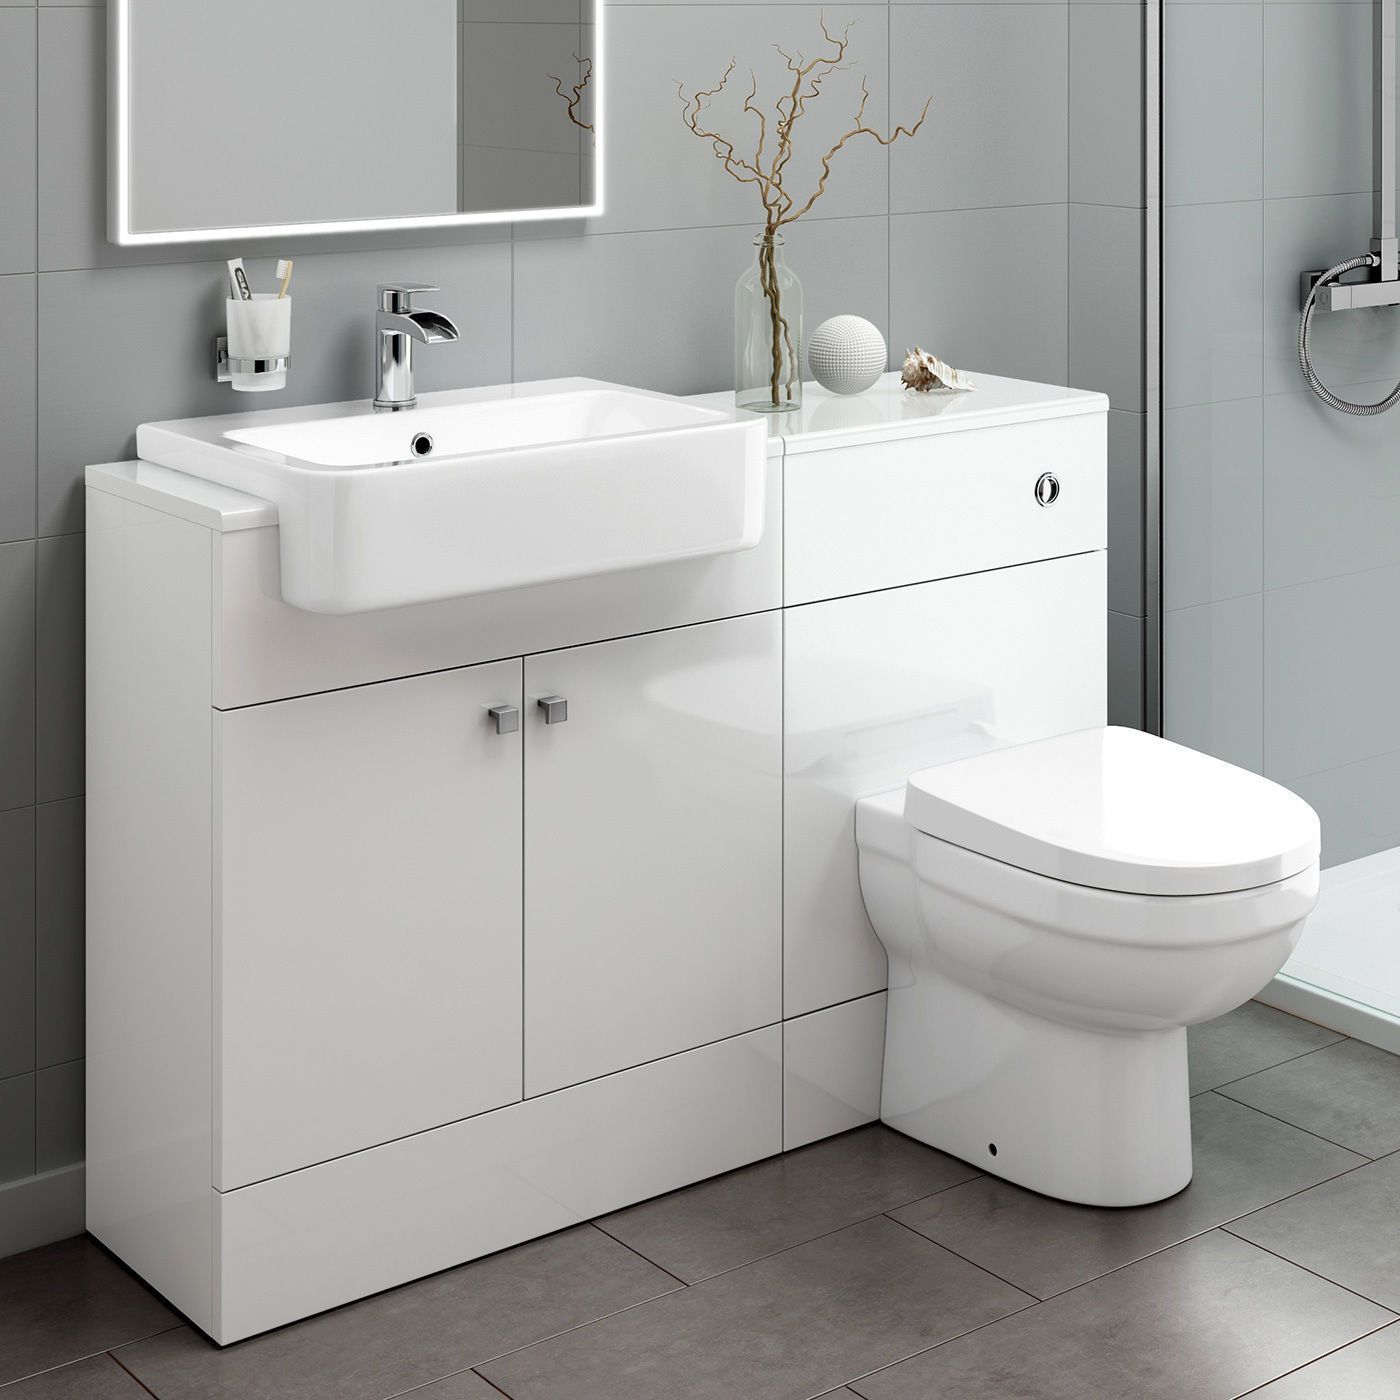 This toilet and sink vanity storage unit features a built in toilet ...